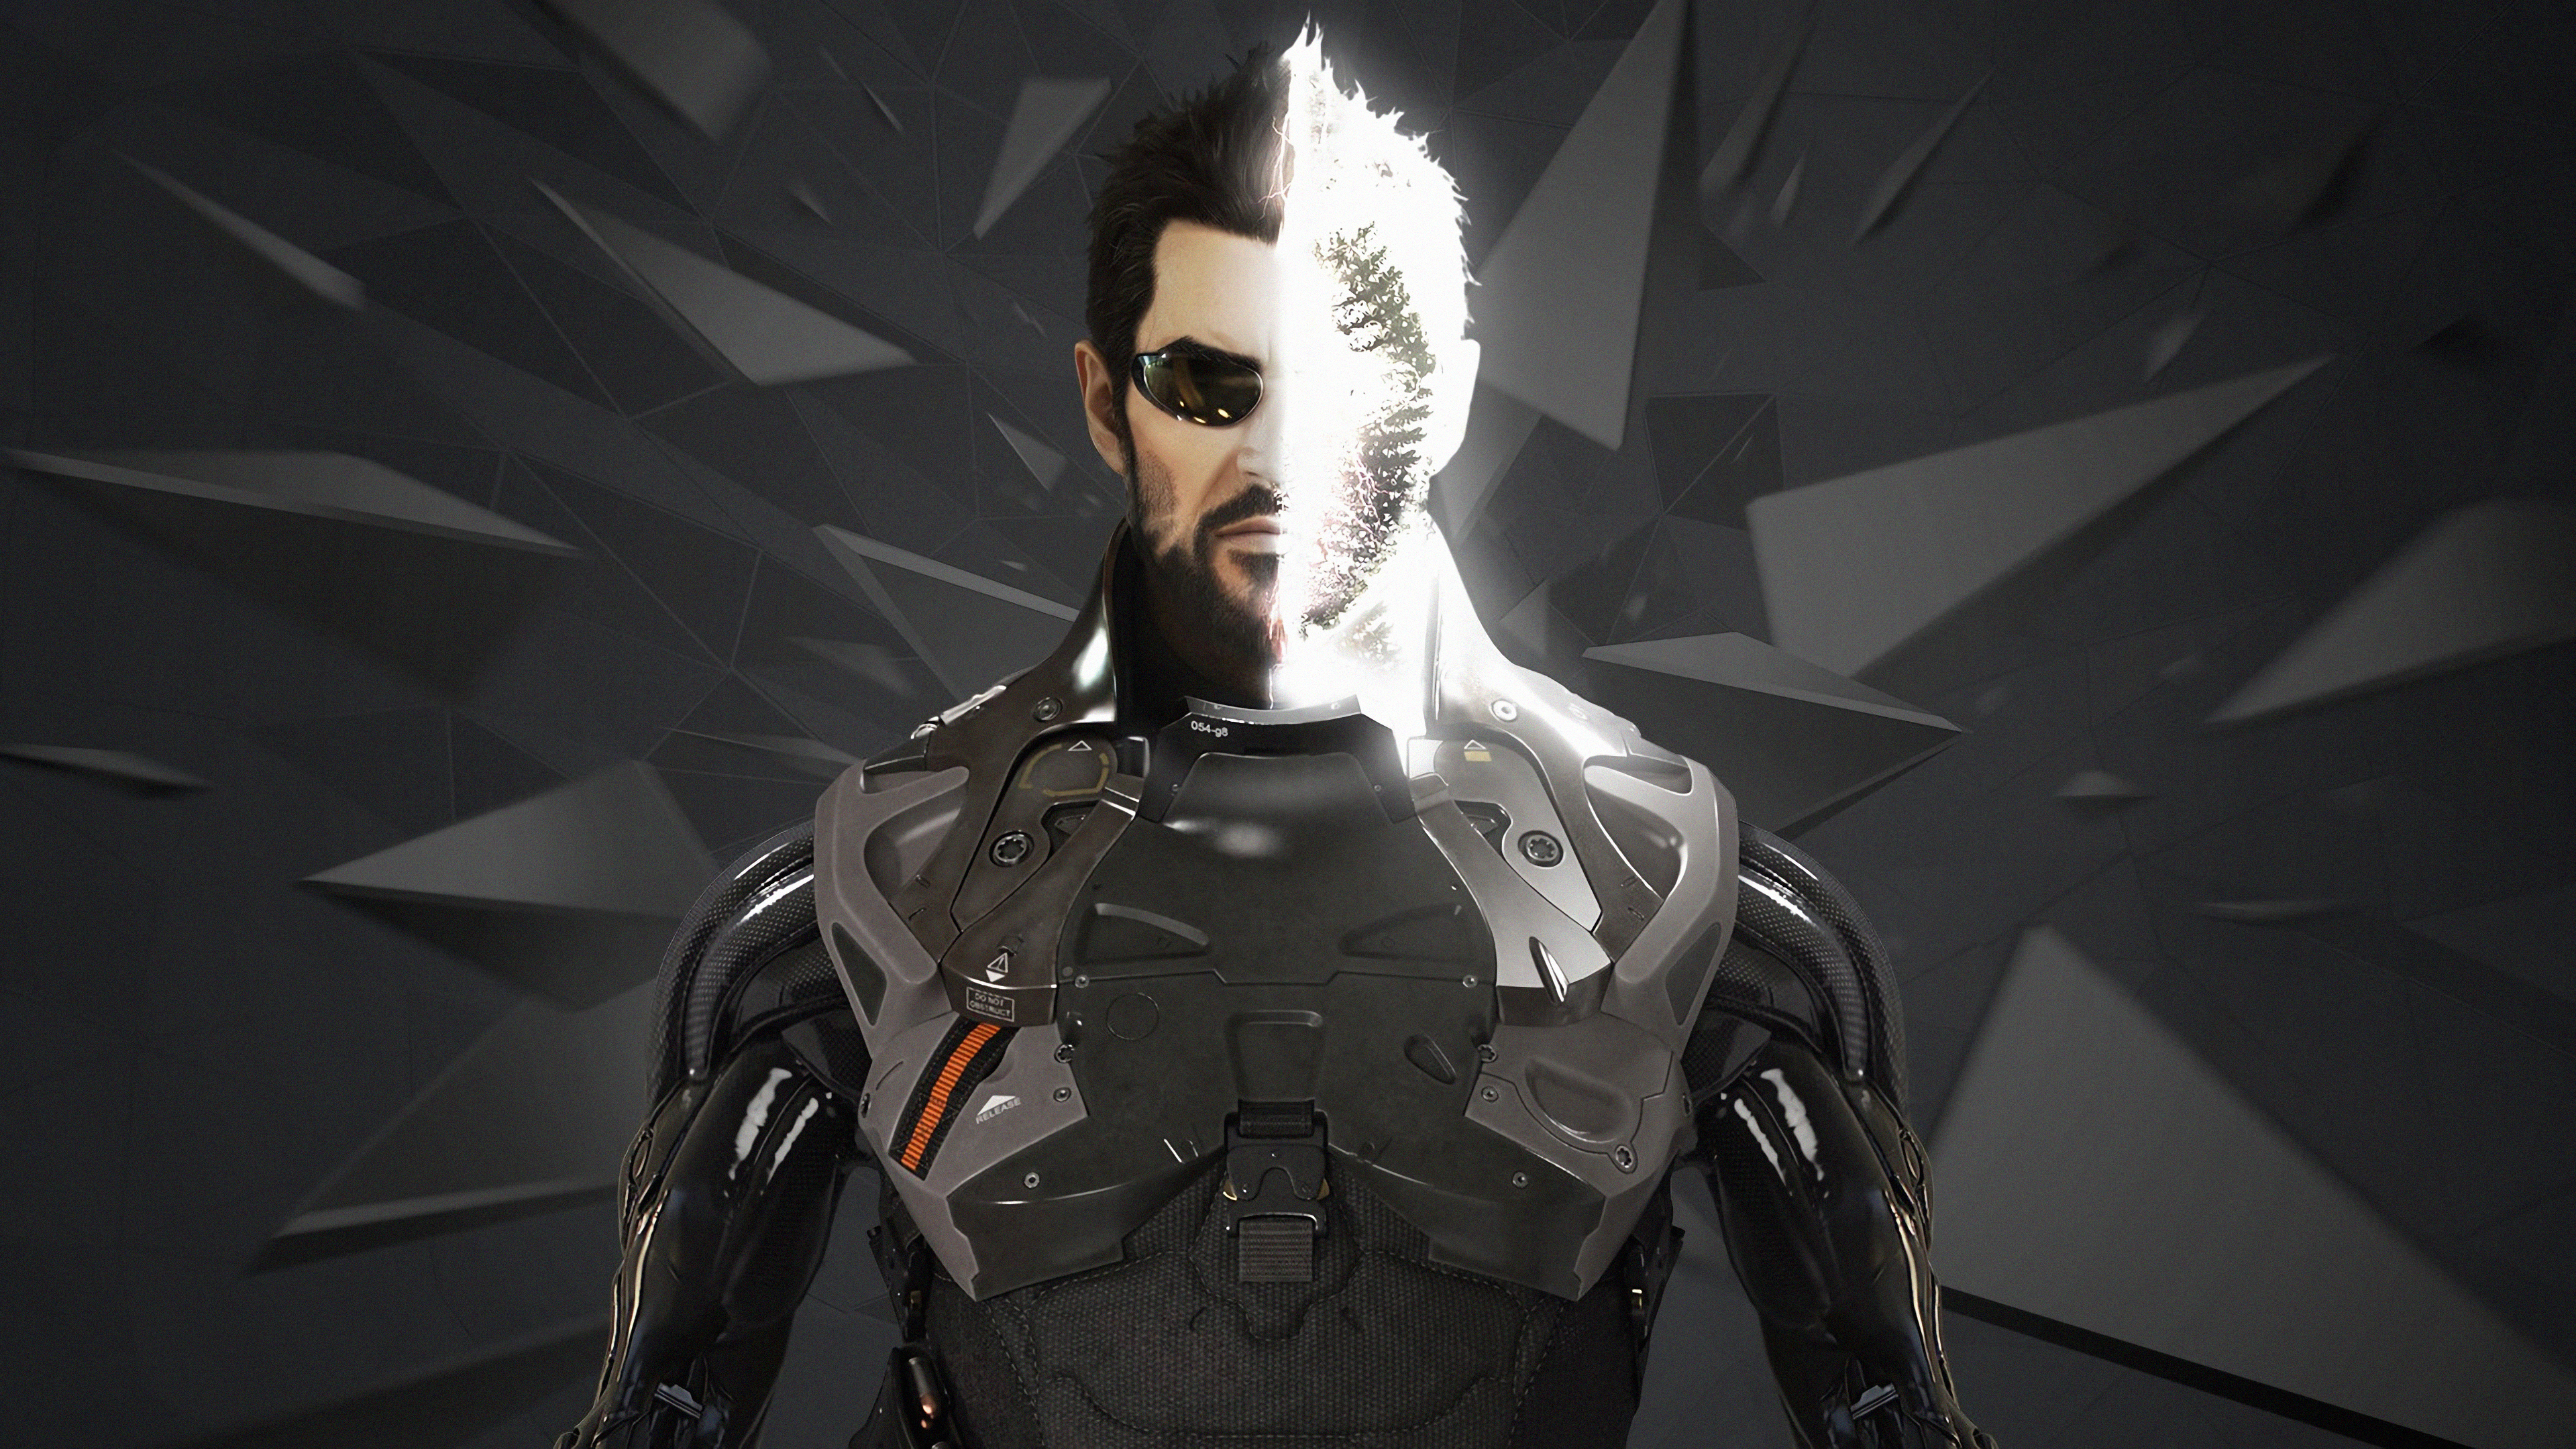 Deus Ex Mankind Video Game 4k Hd Games 4k Wallpapers Images